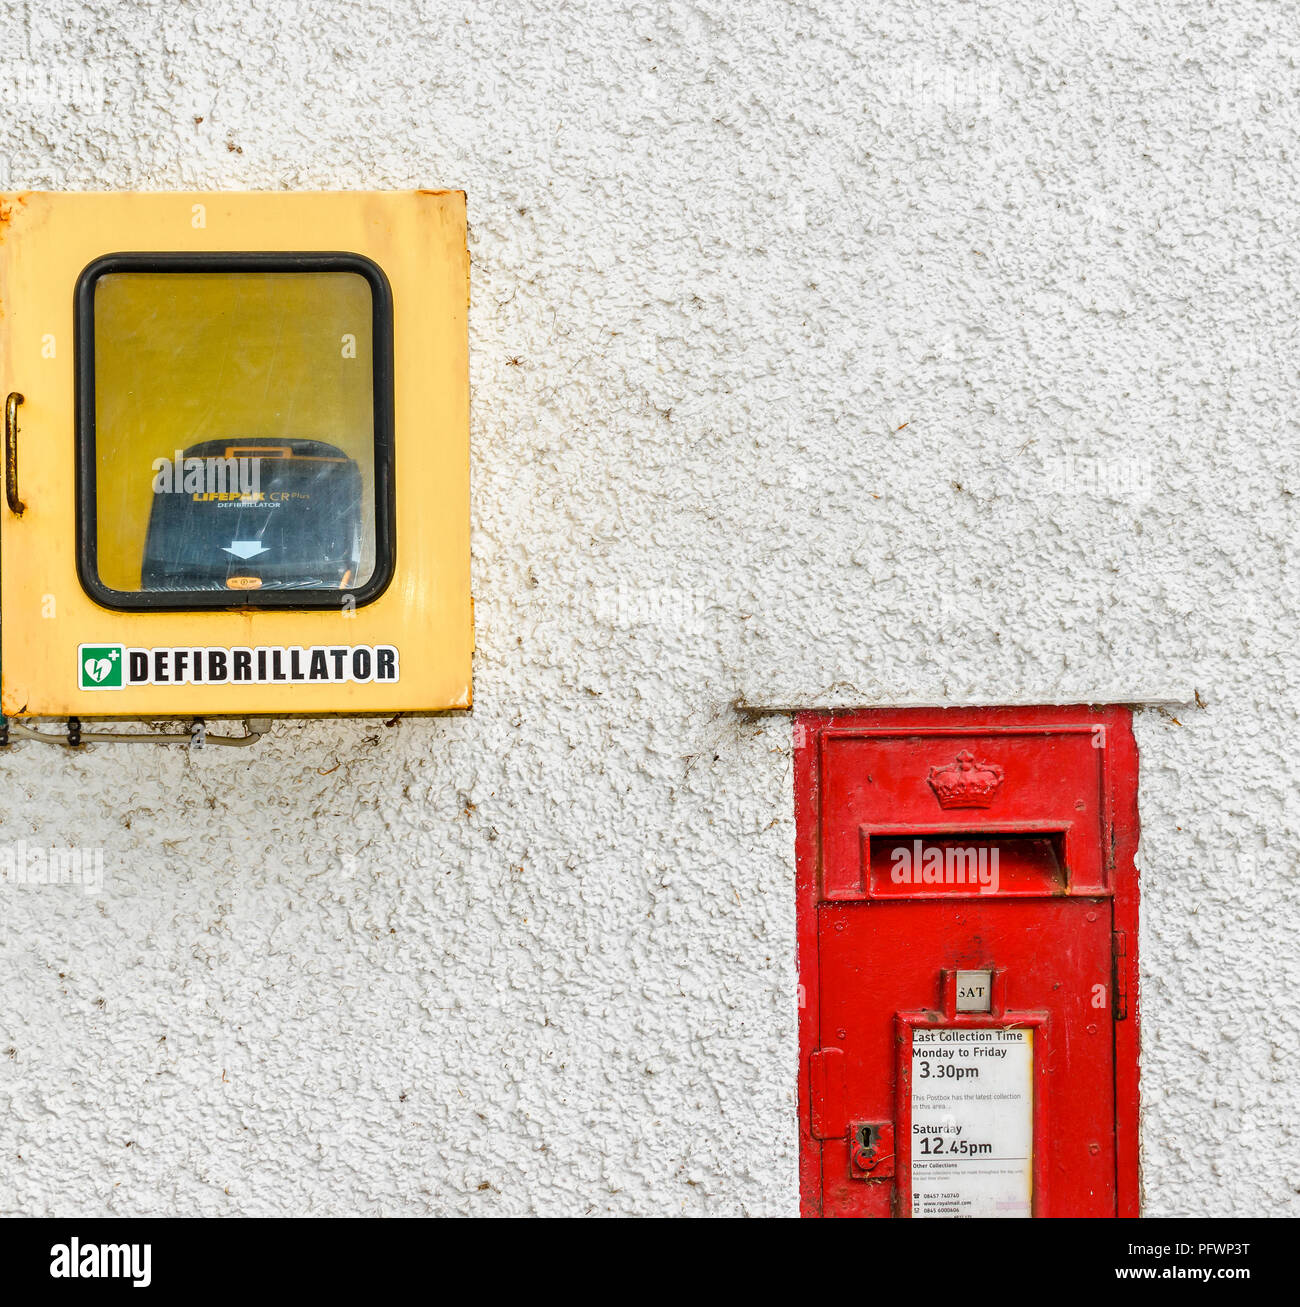 DEFIBRILLATOR AND RED LETTER BOX ON A WHITE WALL - Stock Image